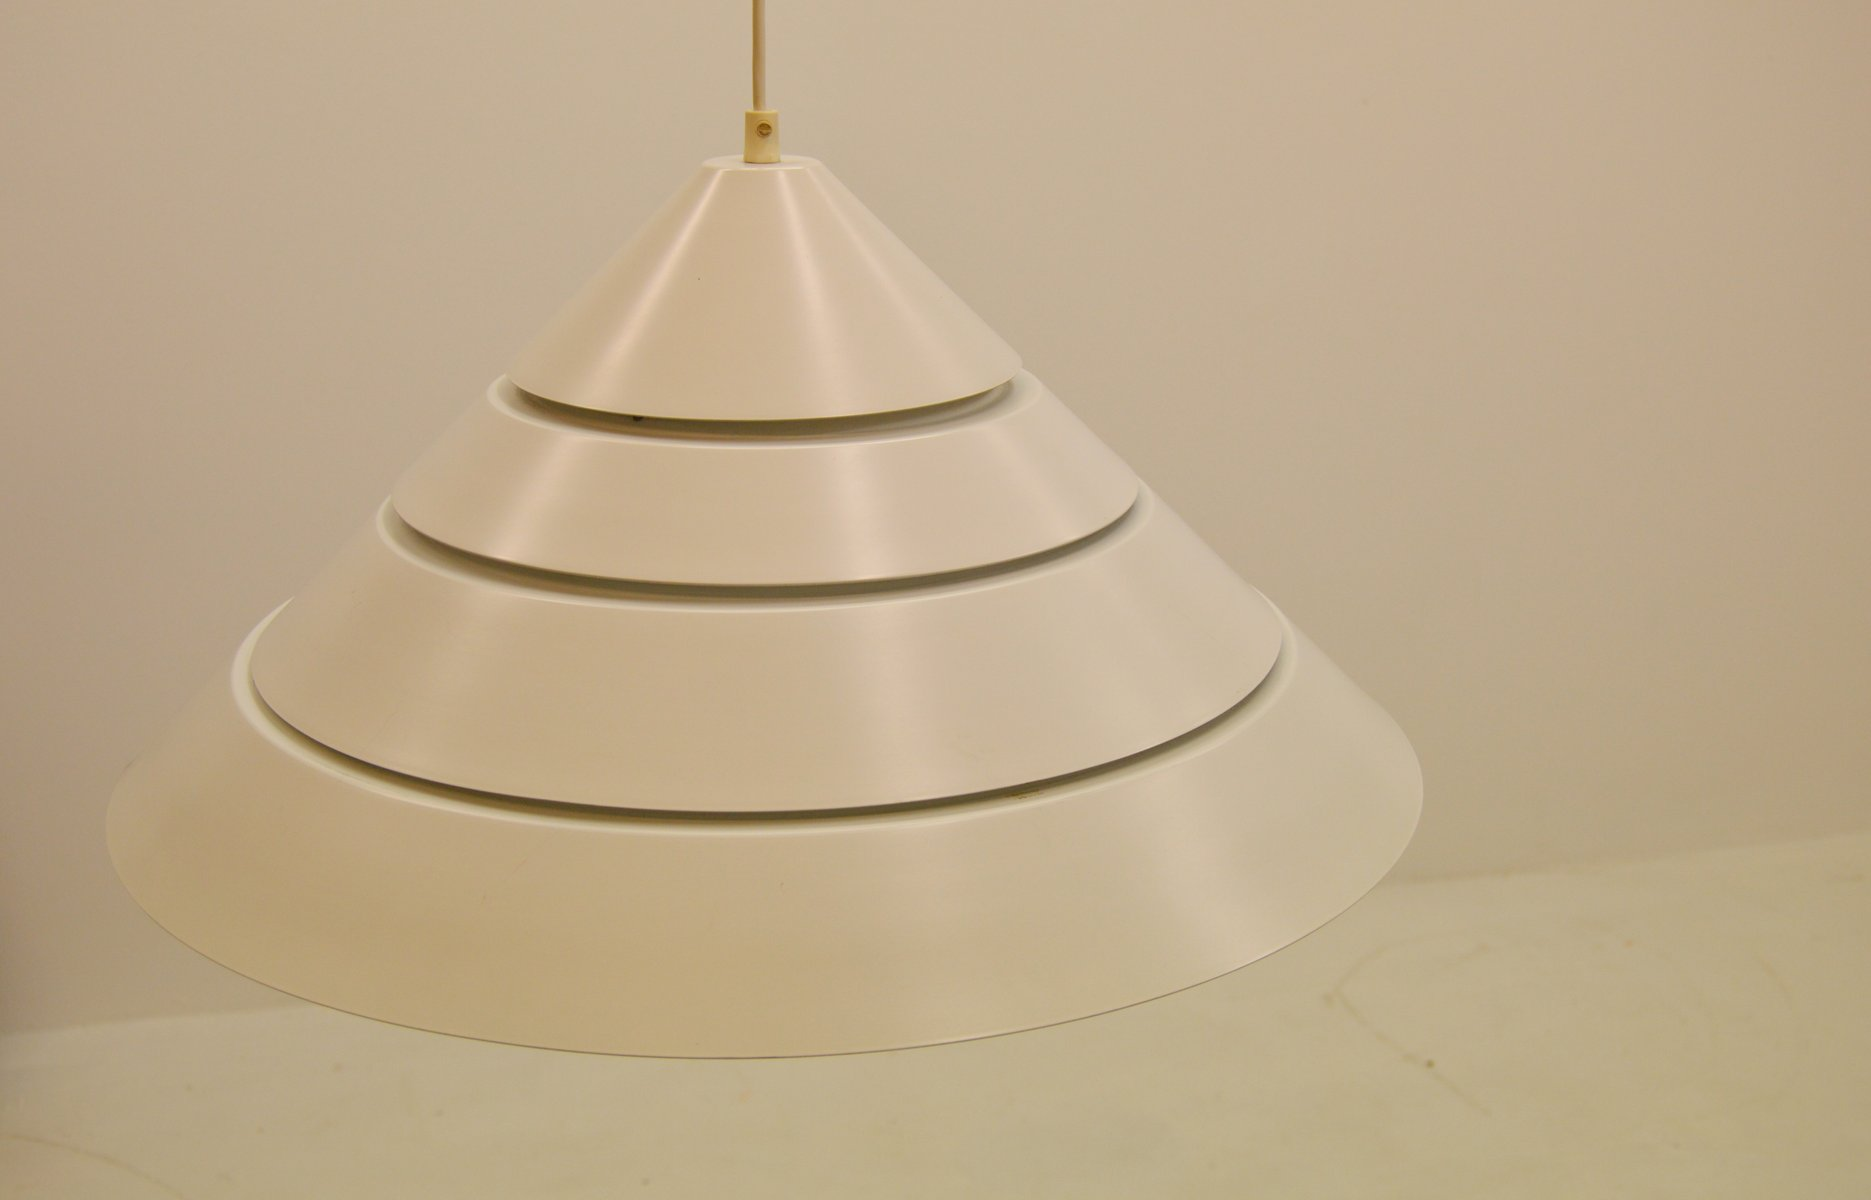 Cone Shaped Pendant Light Cone Shaped Ceiling Light By Hans Agne Jakobsson 1960s